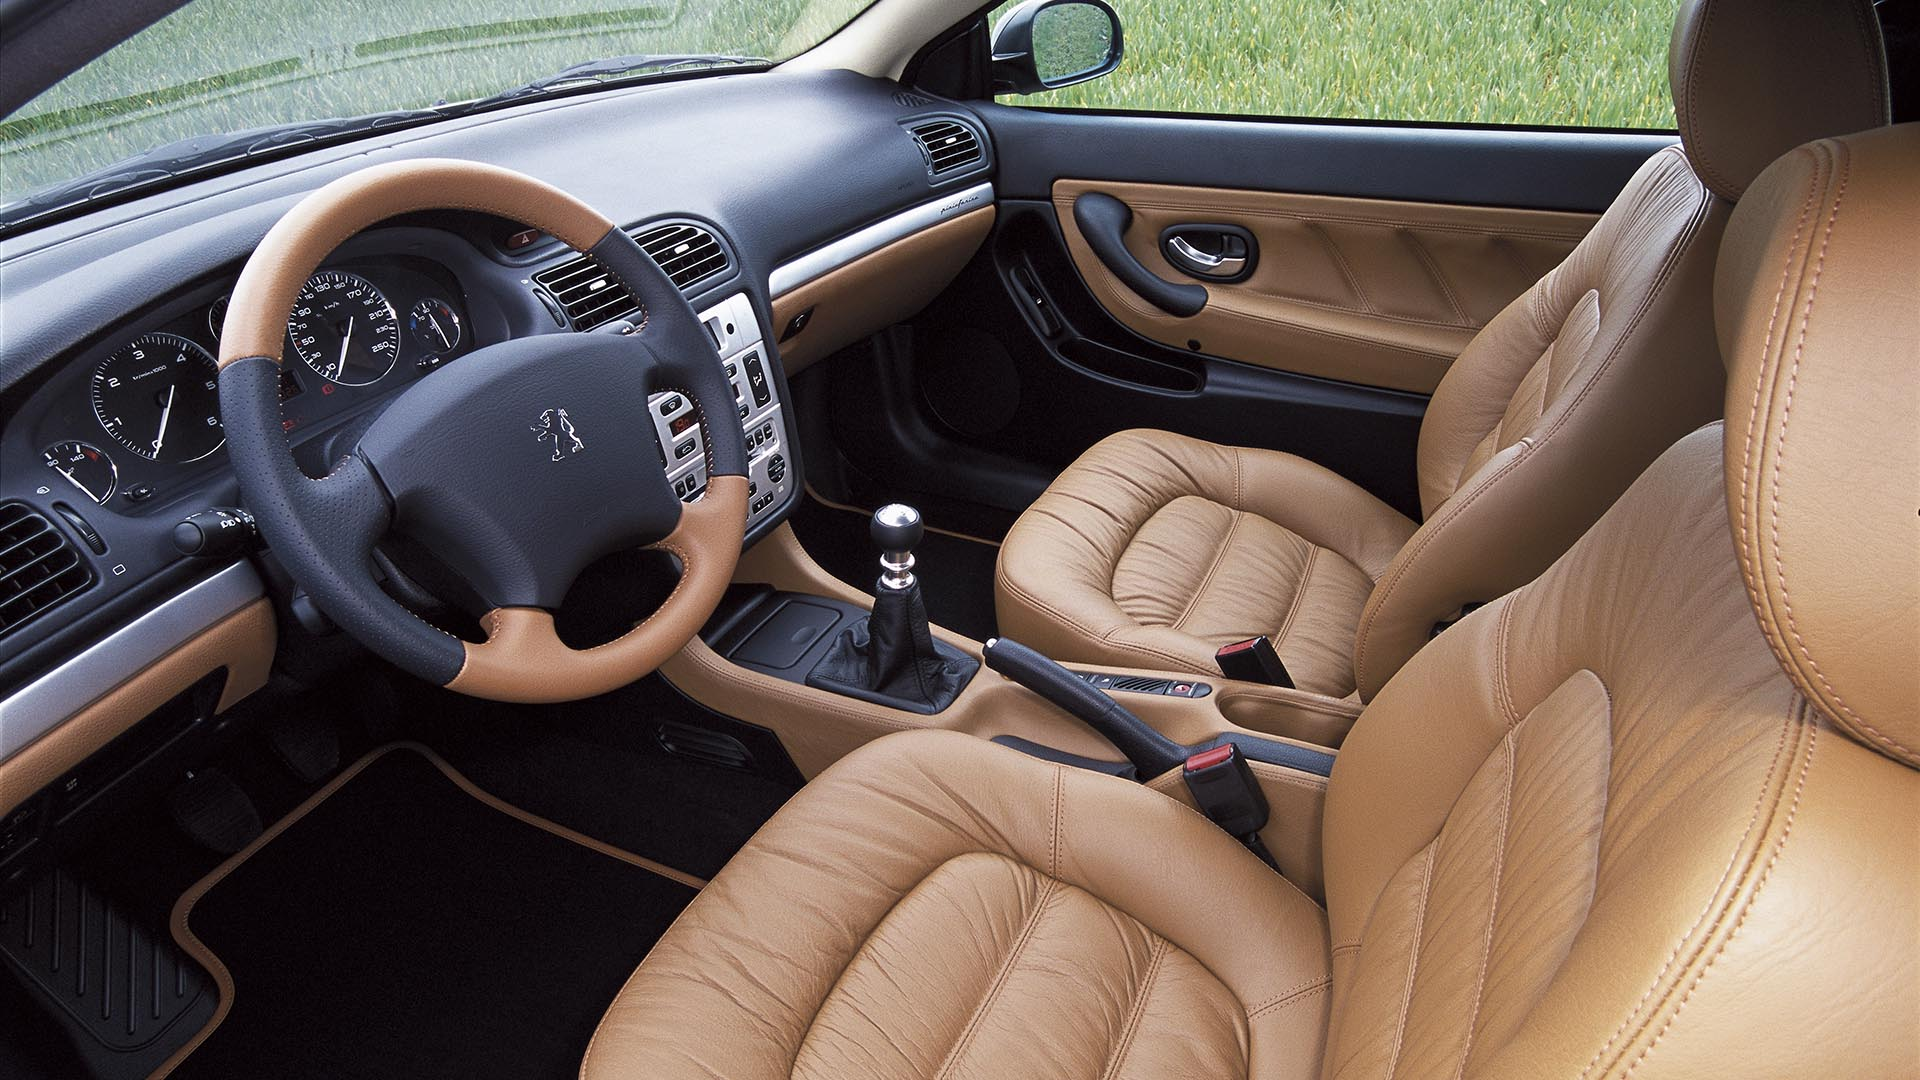 Peugeot 406 Coupe facelift interior